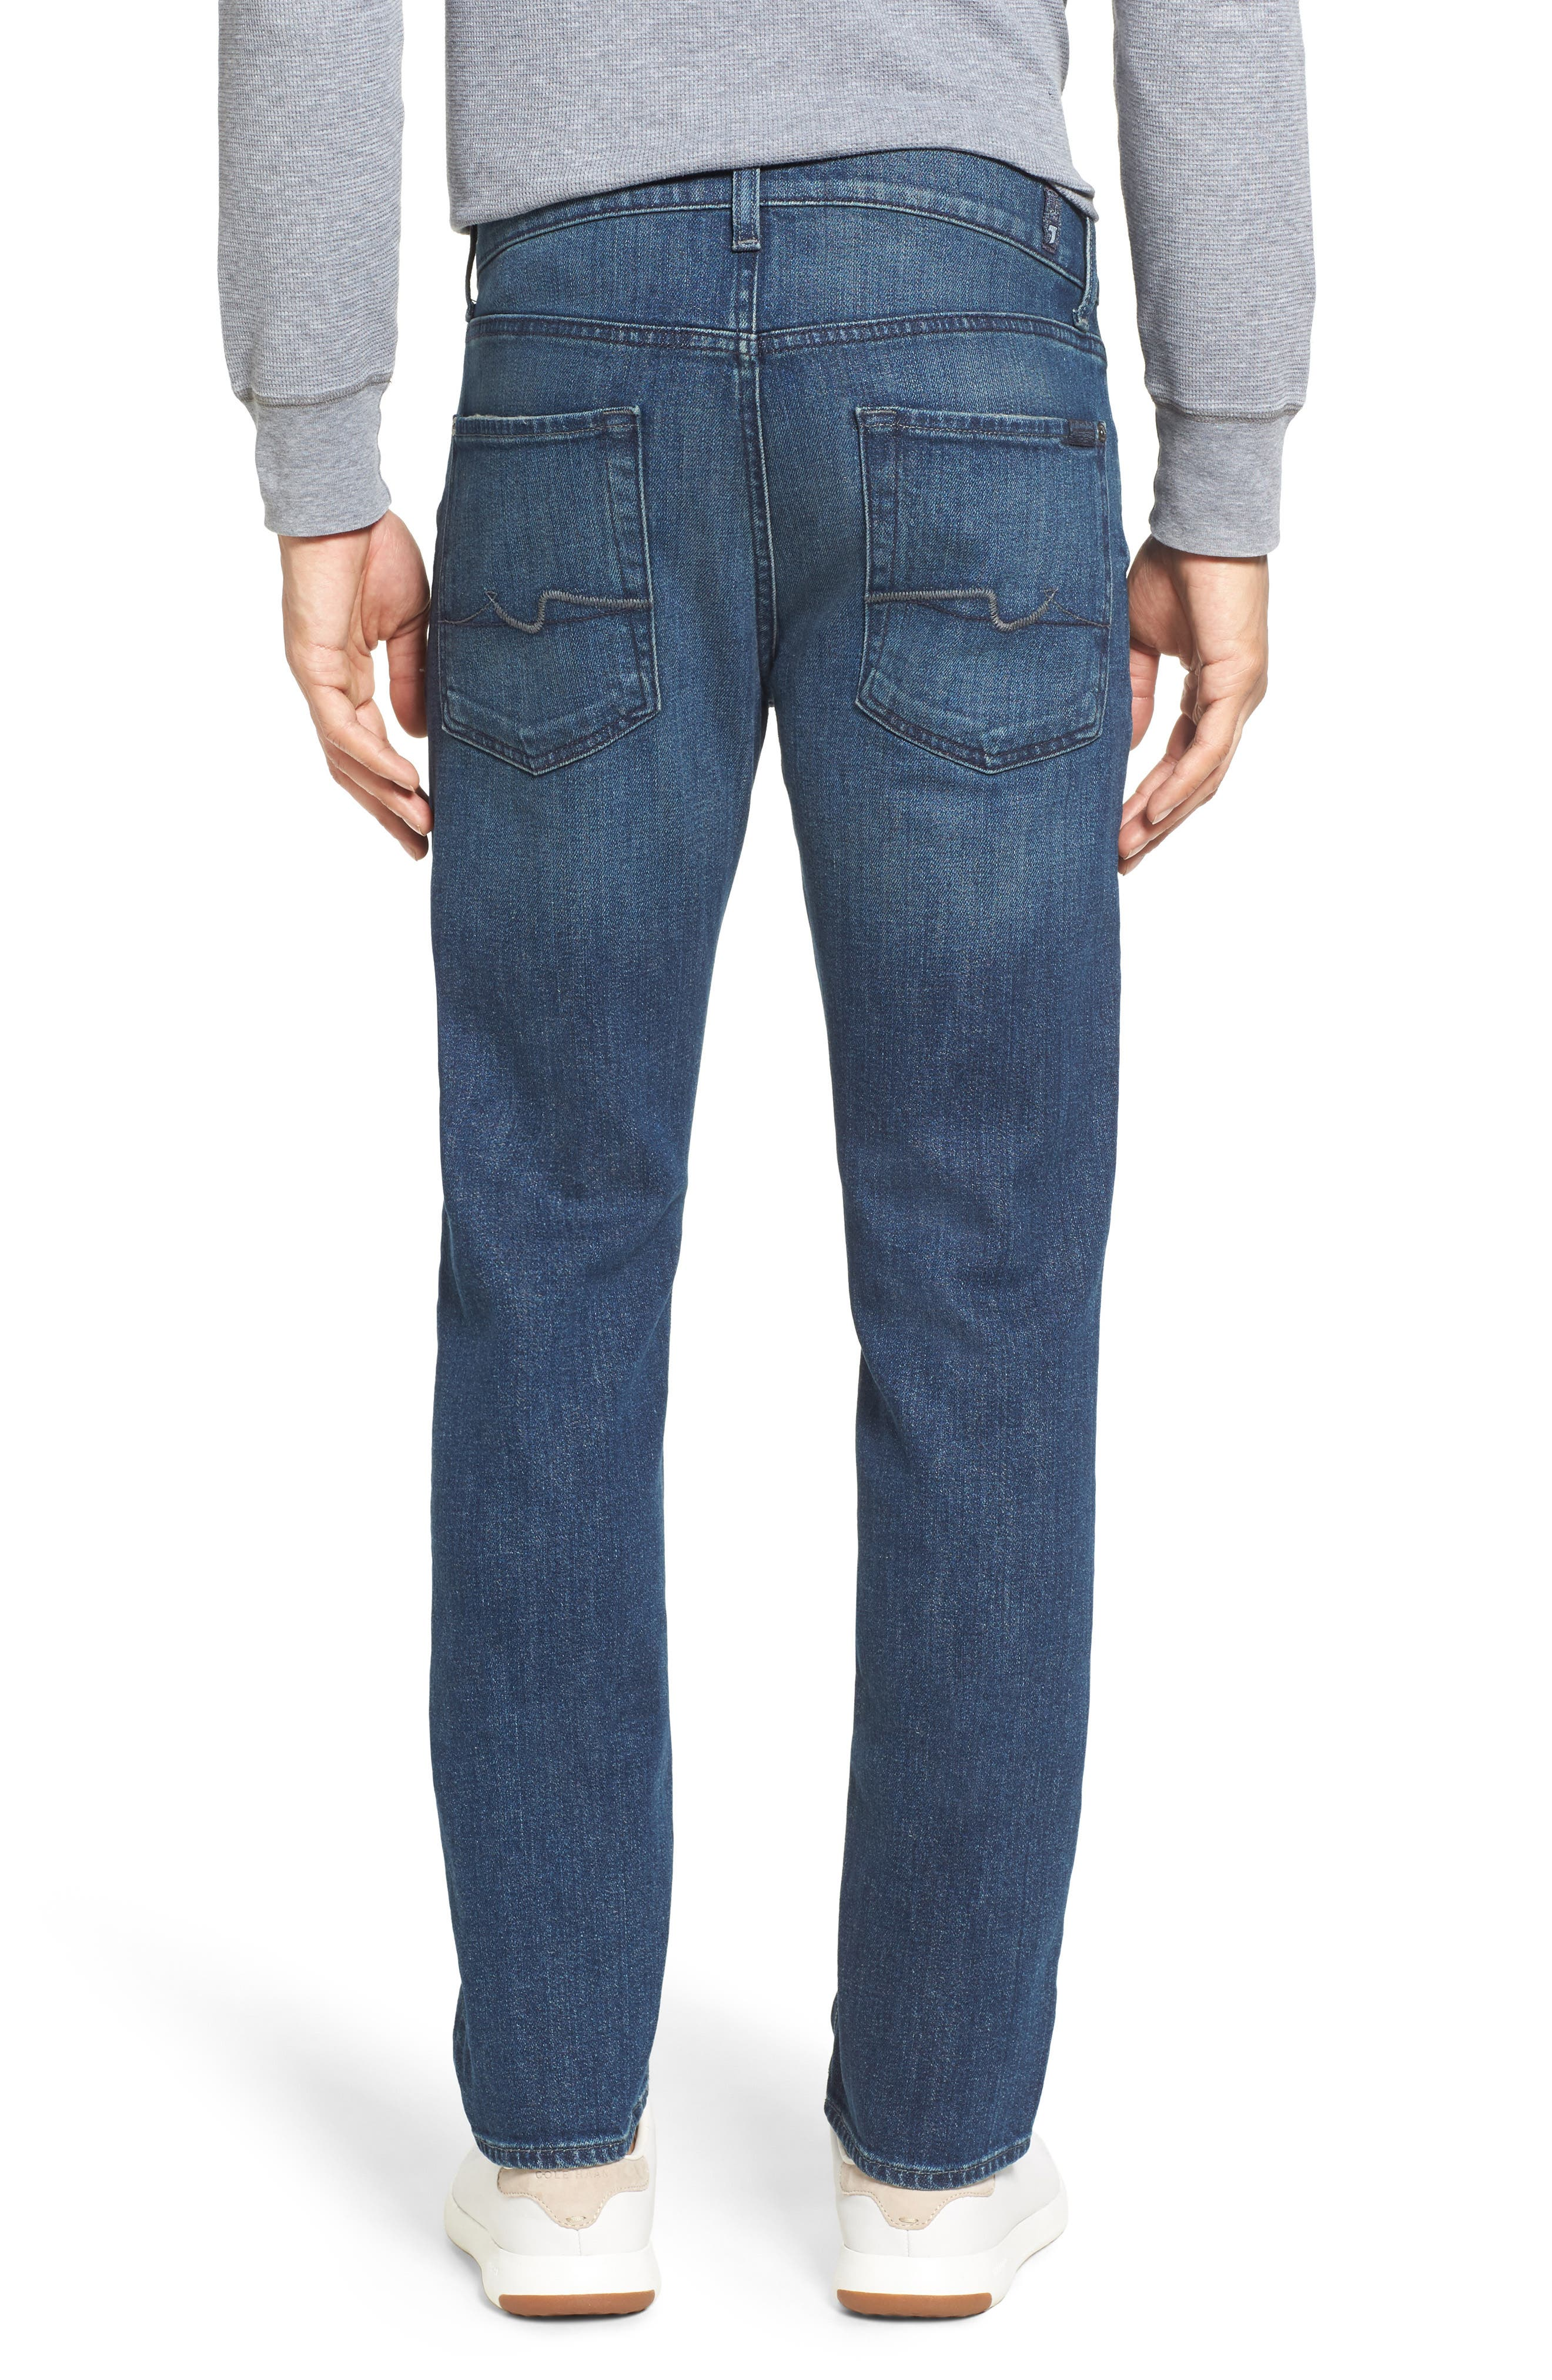 7 For All Mankind Slimmy Slim Fit Jeans,                             Alternate thumbnail 2, color,                             Calgary Blue